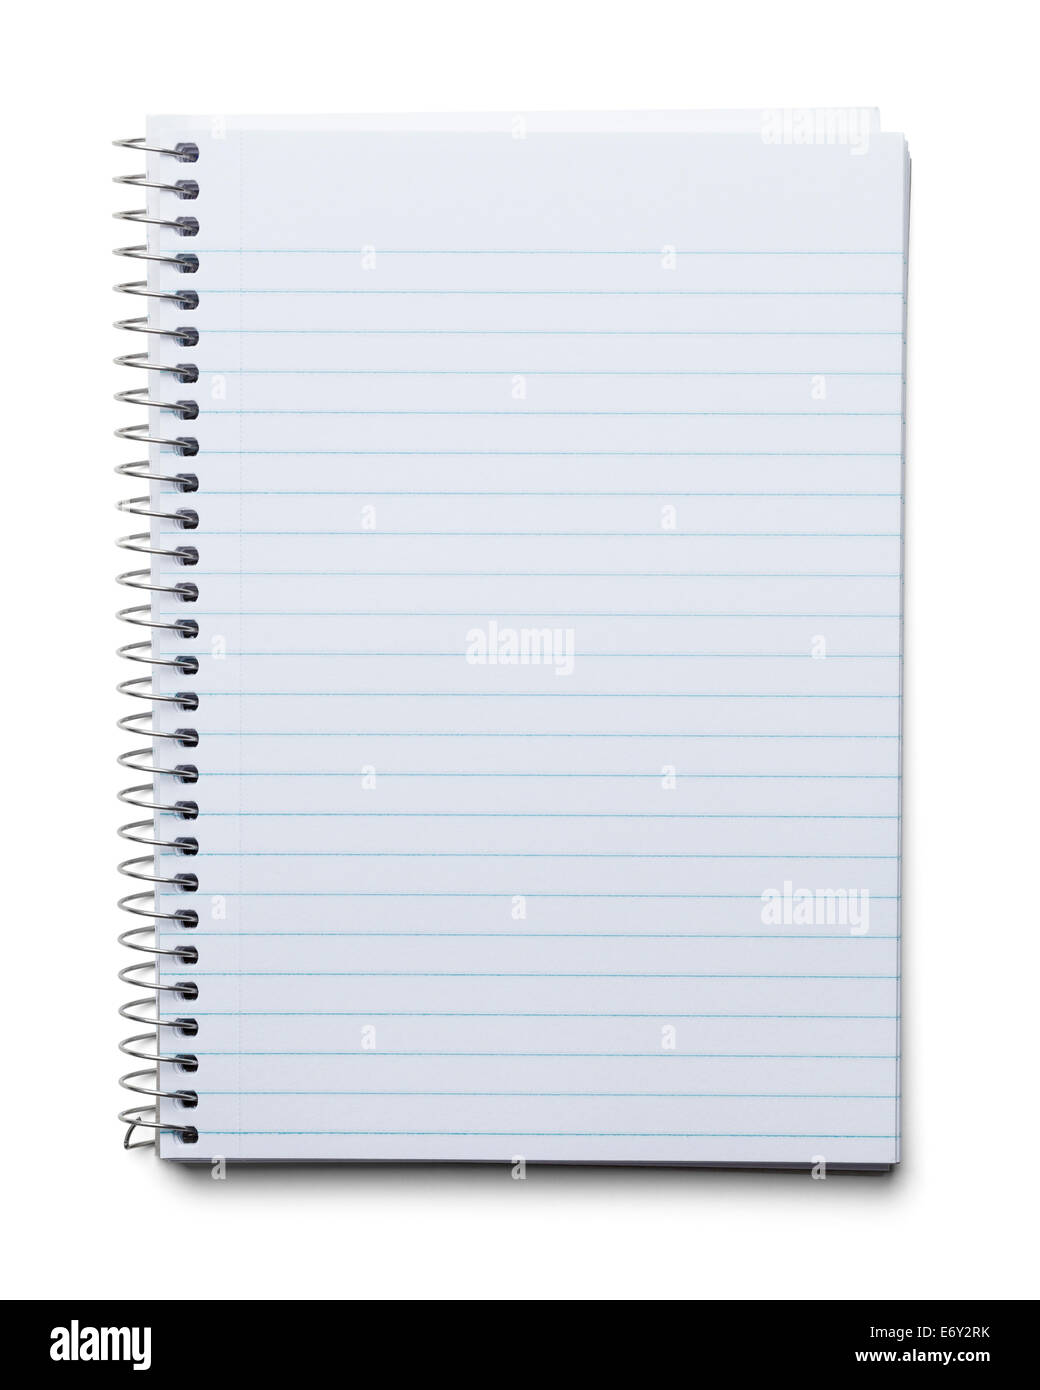 Lined Paper Stockfotos & Lined Paper Bilder - Alamy